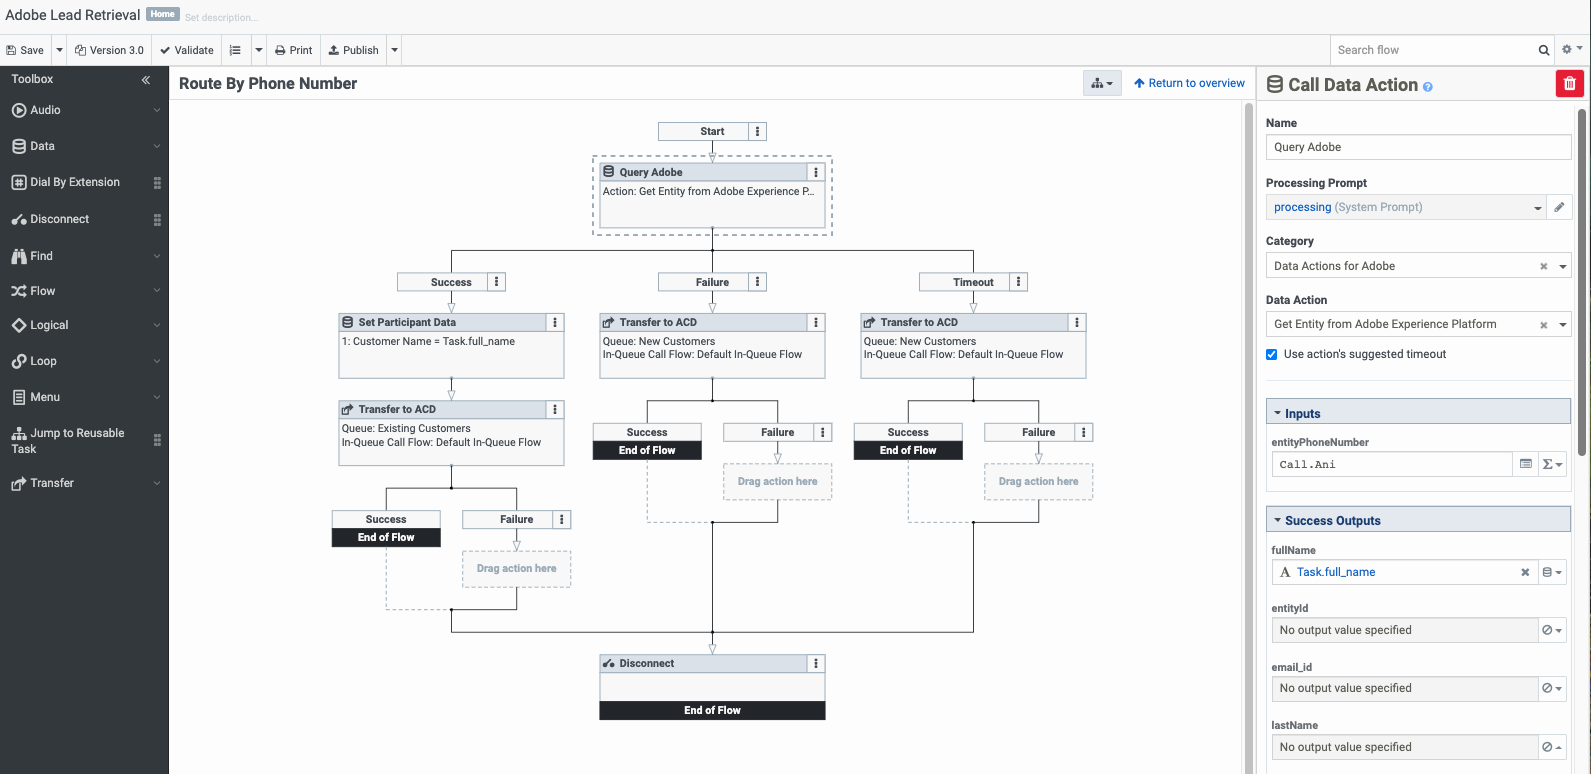 Example call flow for the Adobe data actions integration